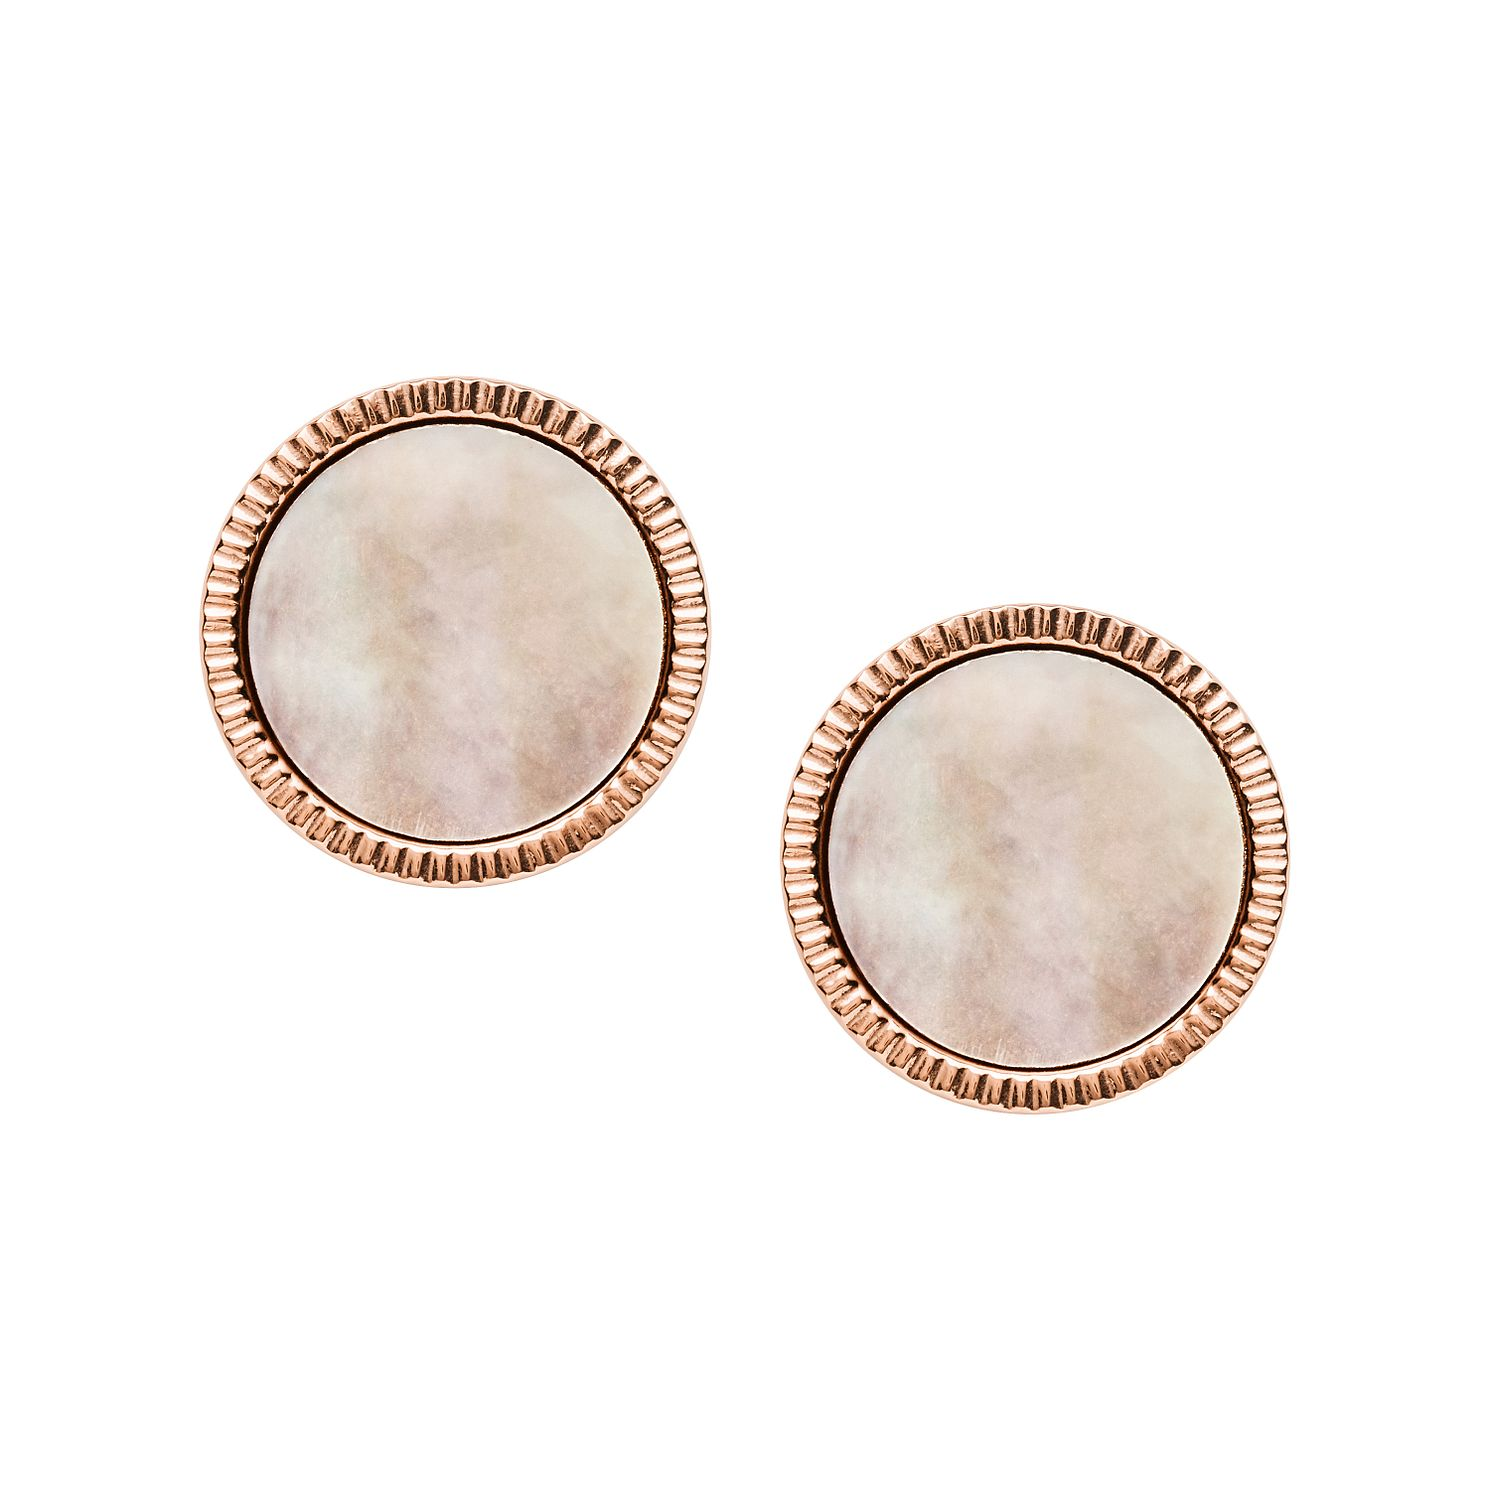 Fossil Rose Gold Tone Mother Of Pearl Disc Stud Earrings - Product number 4139399